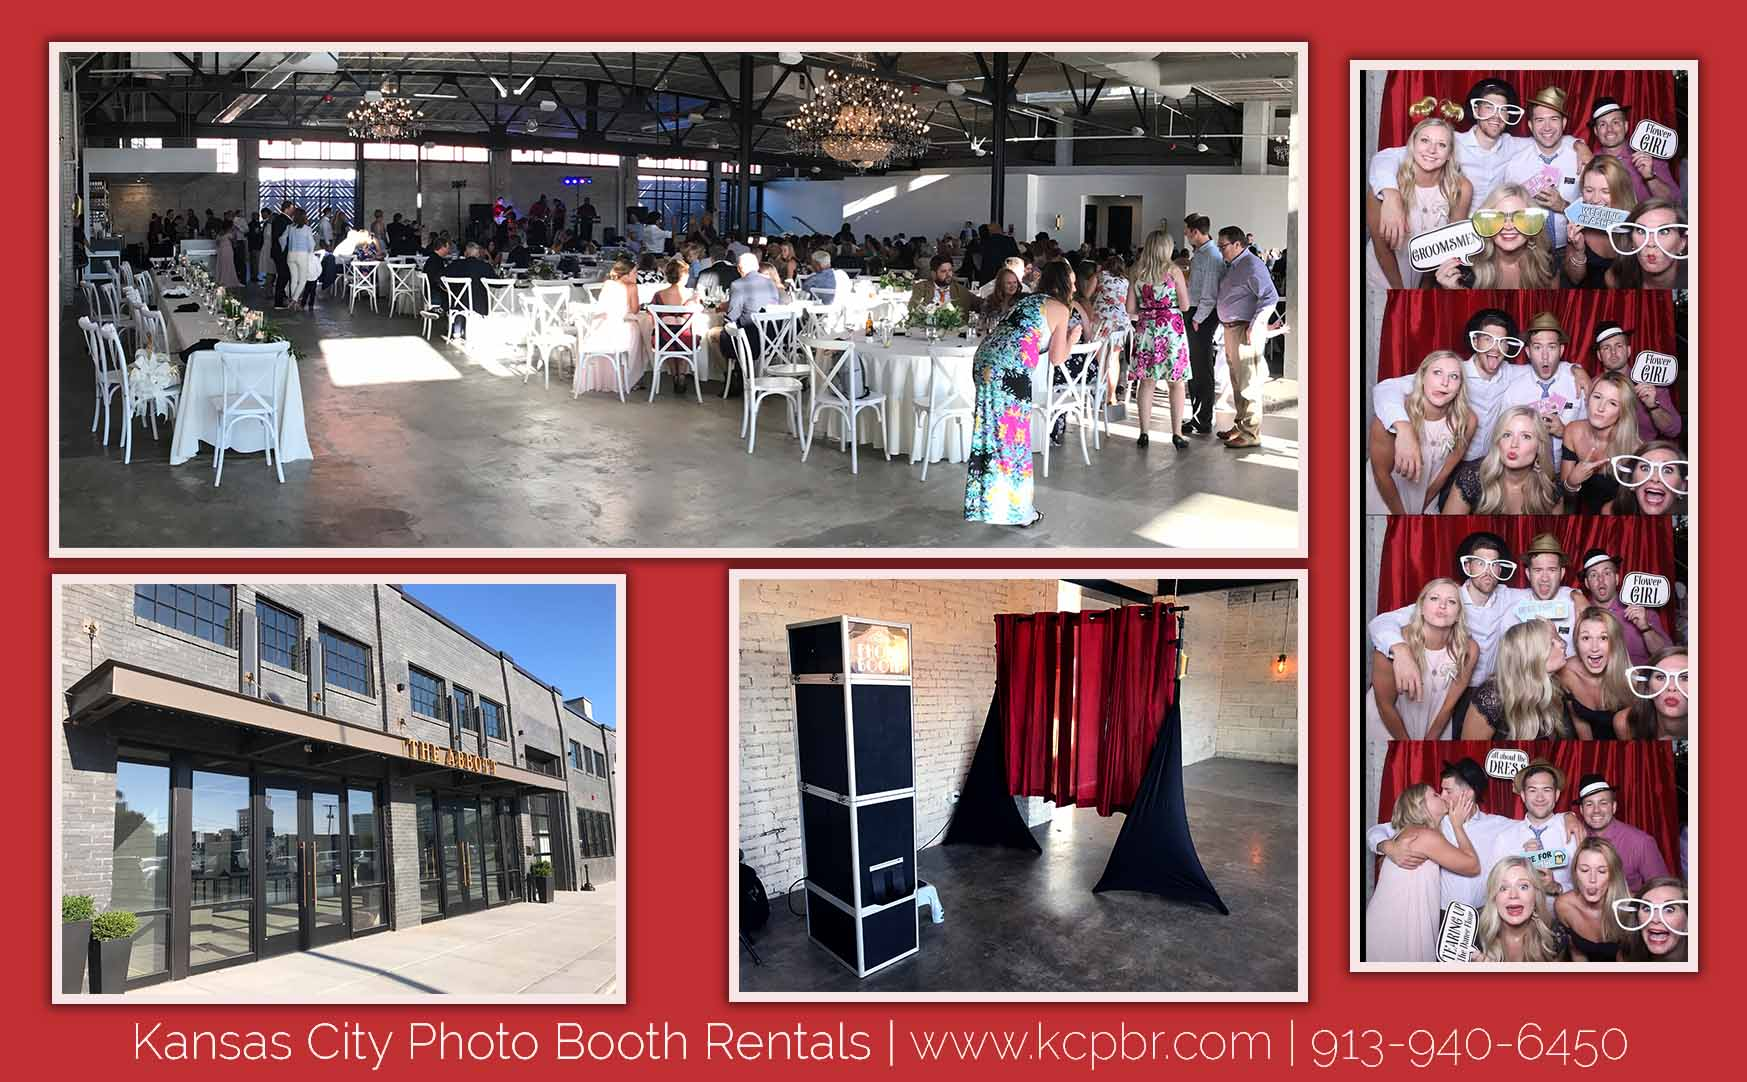 Photo Booth Rentals in Kansas City, MO - The Knot